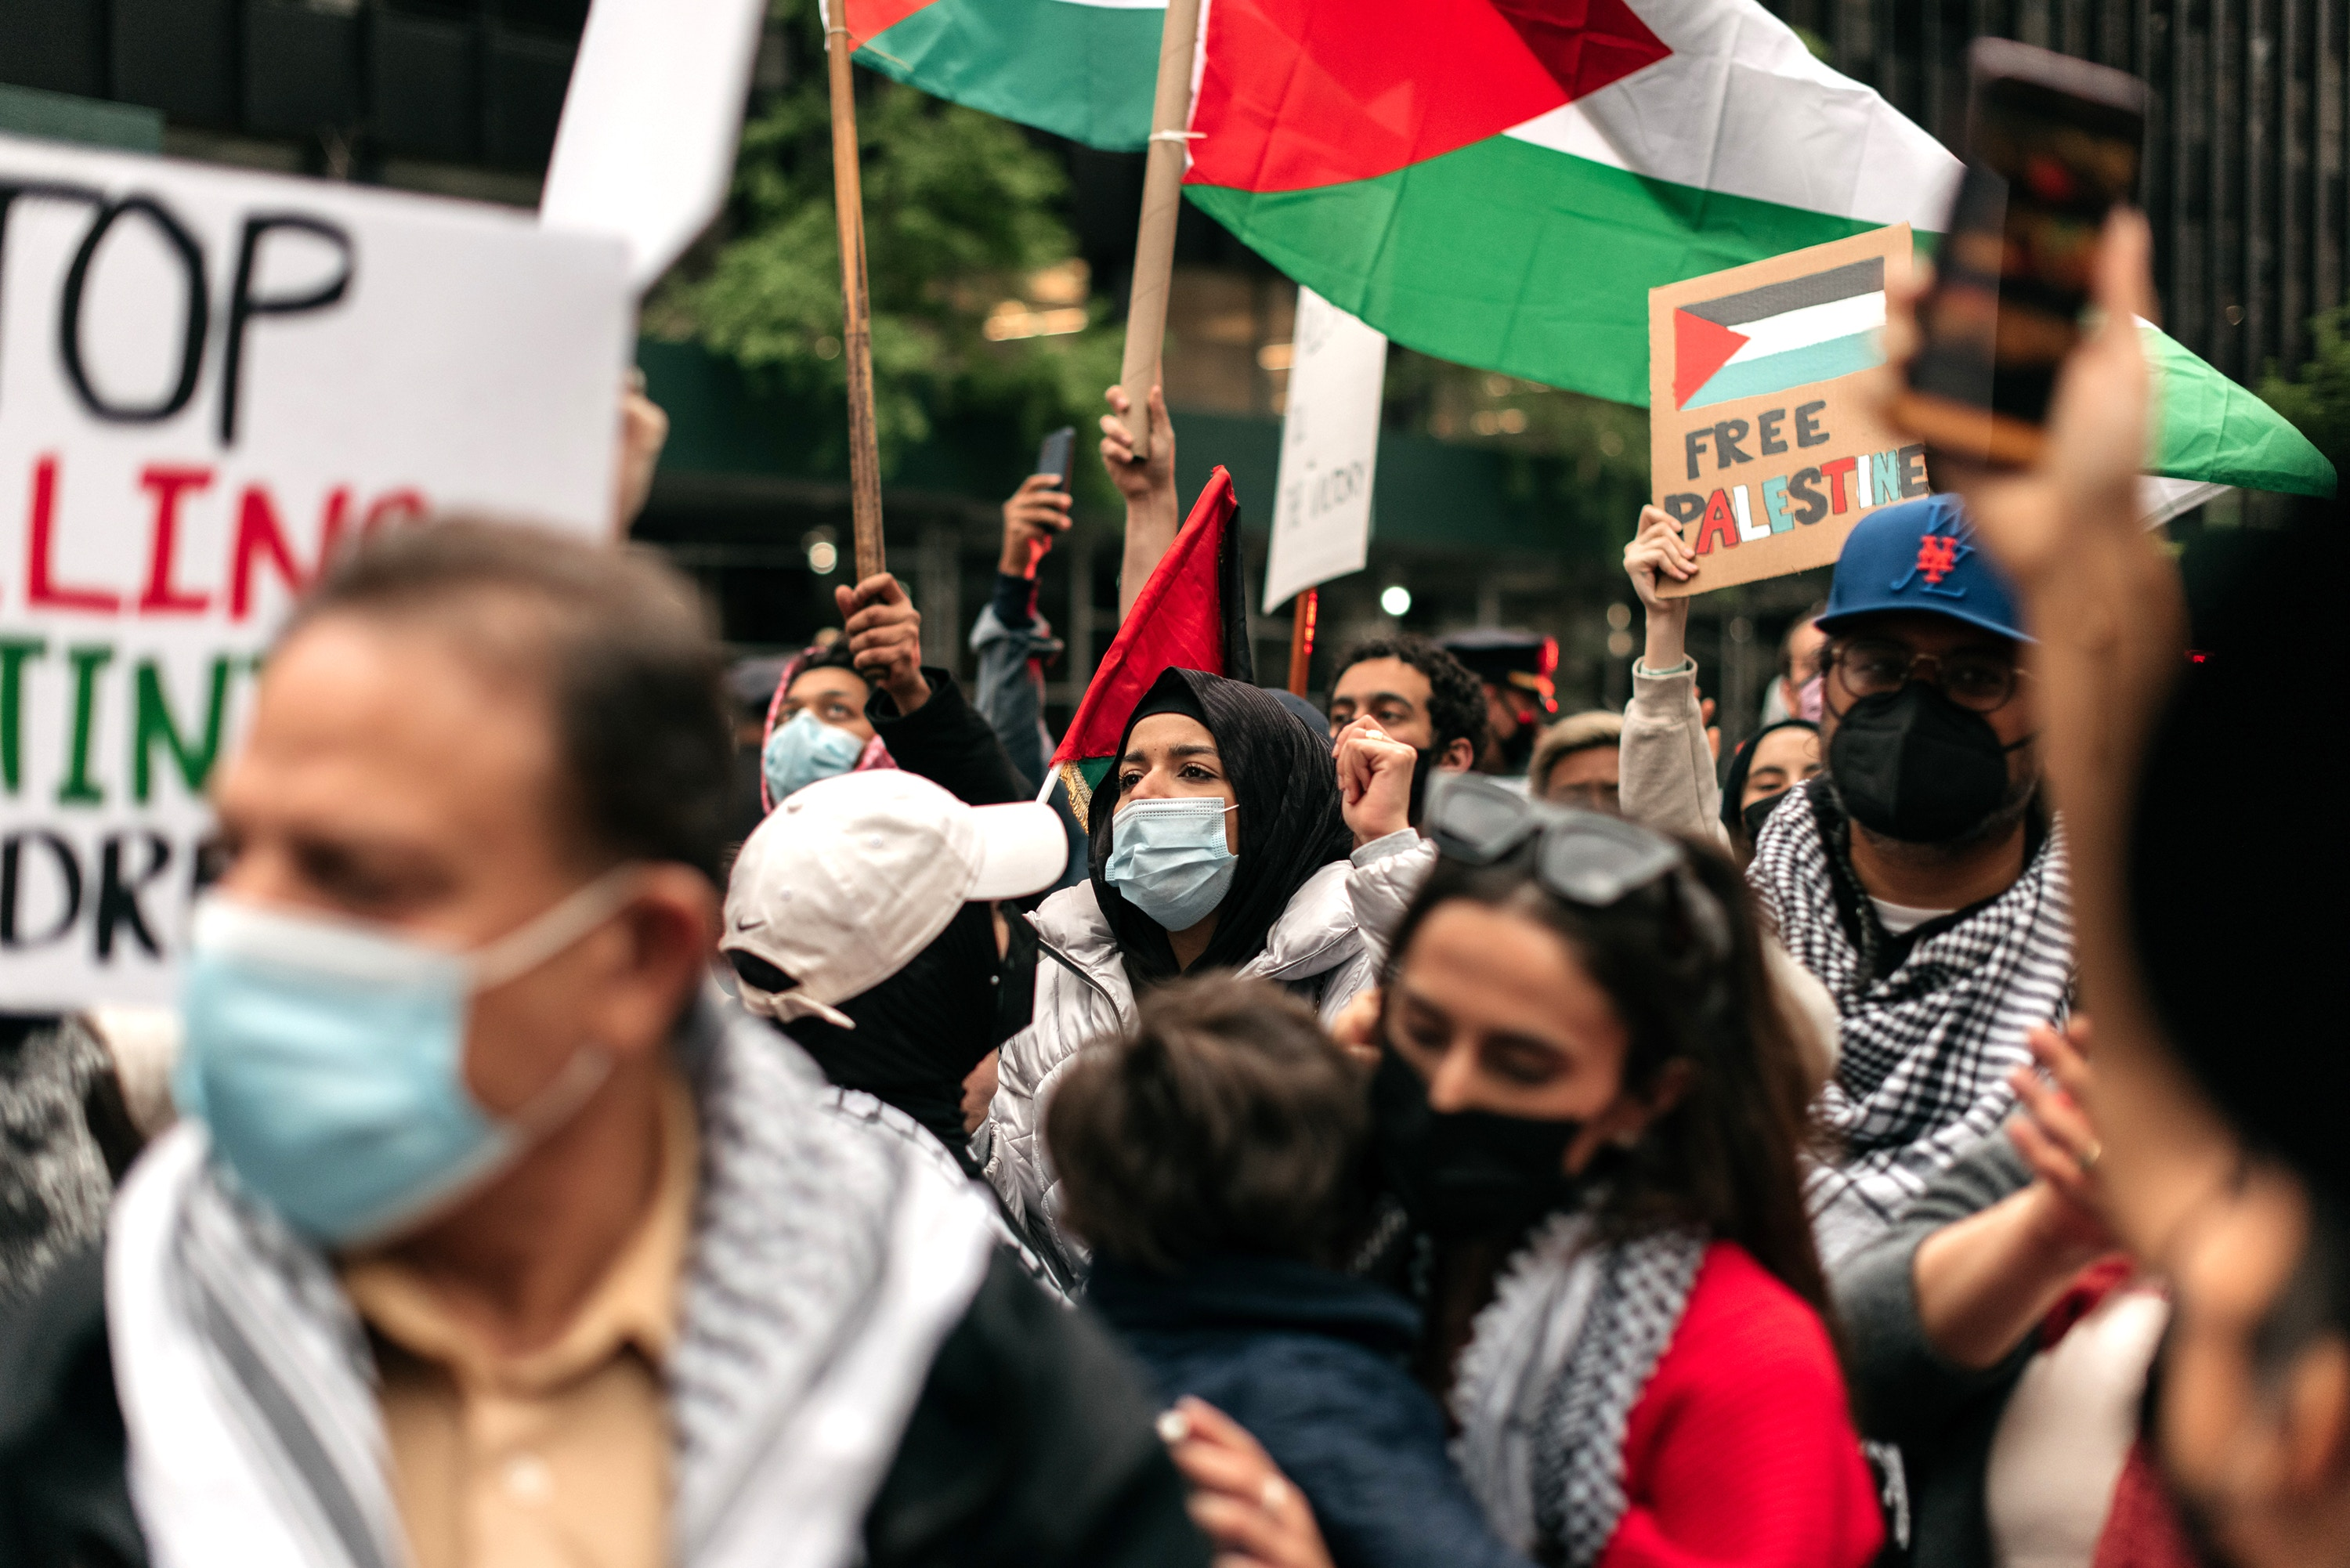 NEW YORK, NY - MAY 11: Protesters demanding an end to Israeli aggression against Palestine rally in Midtown Manhattan on May 11, 2021 in New York City. Recent violence between the Israeli military and Palestinians in Jerusalem has left dozens dead as activists around the world denounce attacks on the city's Al-Aqsa Mosque.(Photo by Scott Heins/Getty Images)